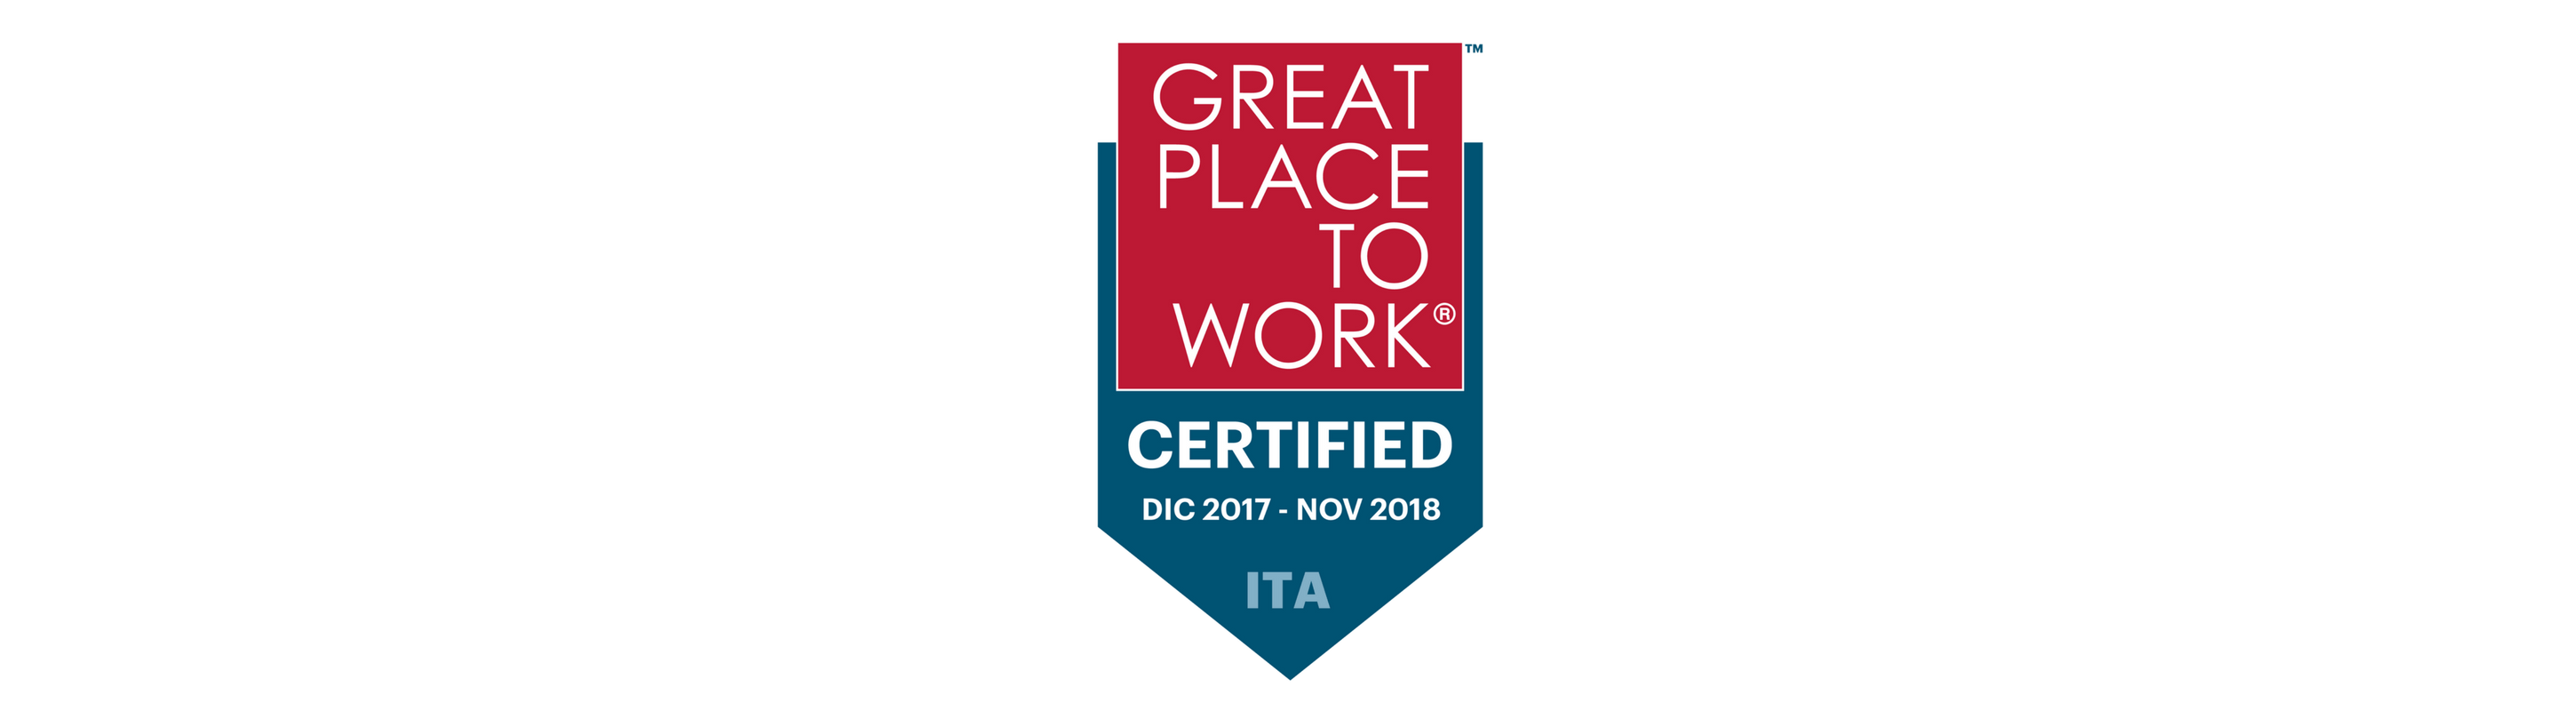 Musement certificata Great Place To Work®